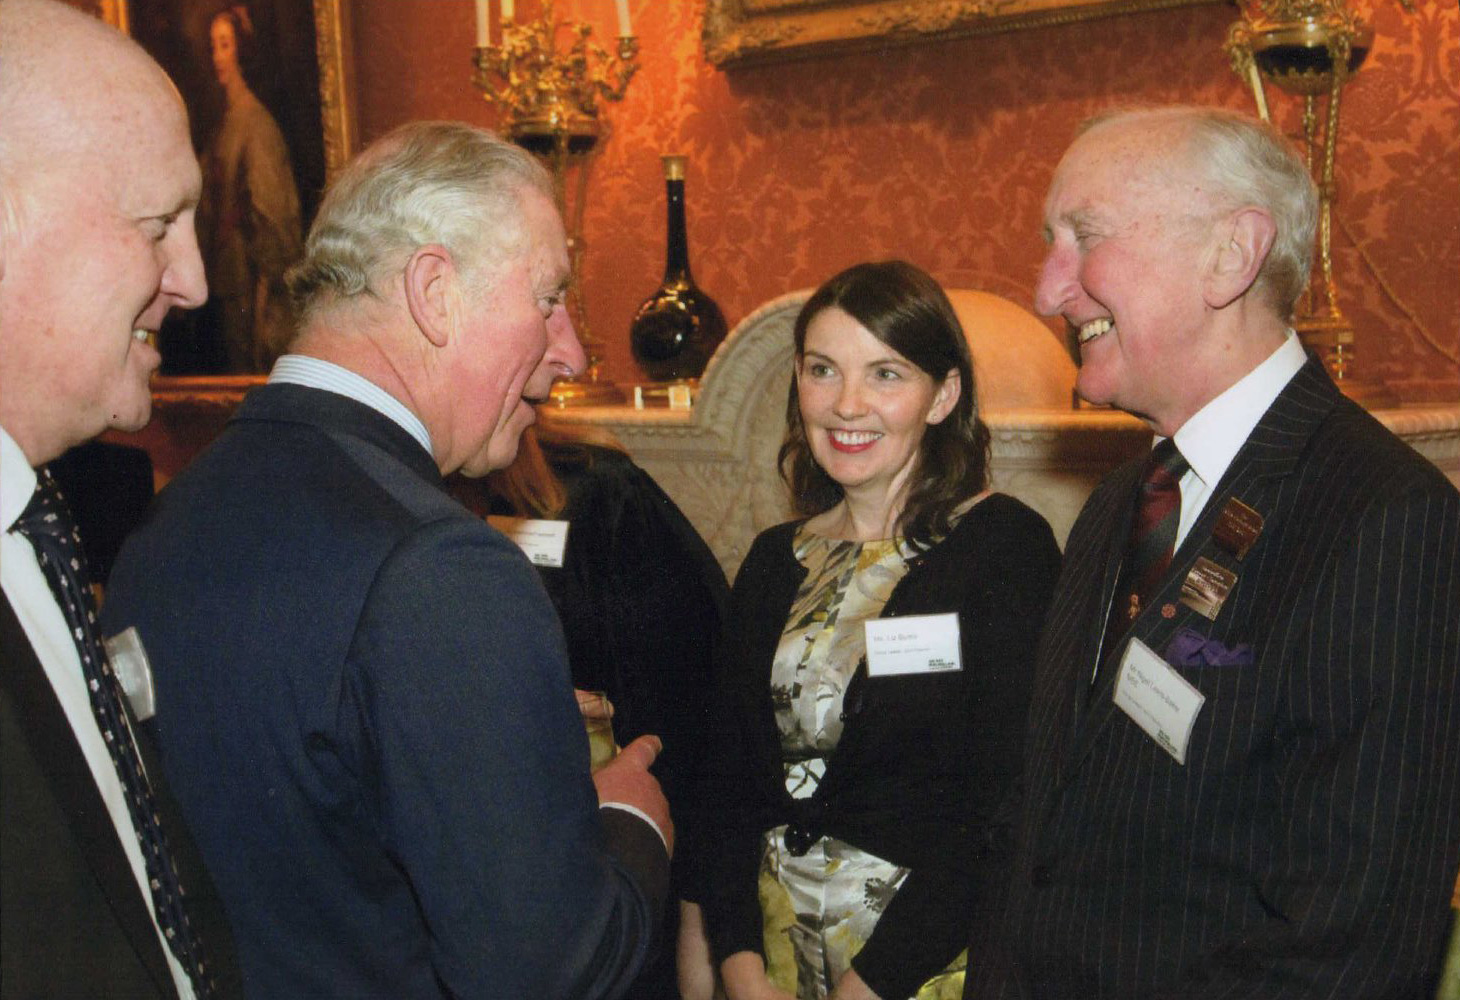 A Macmillan Reception and a New Patron